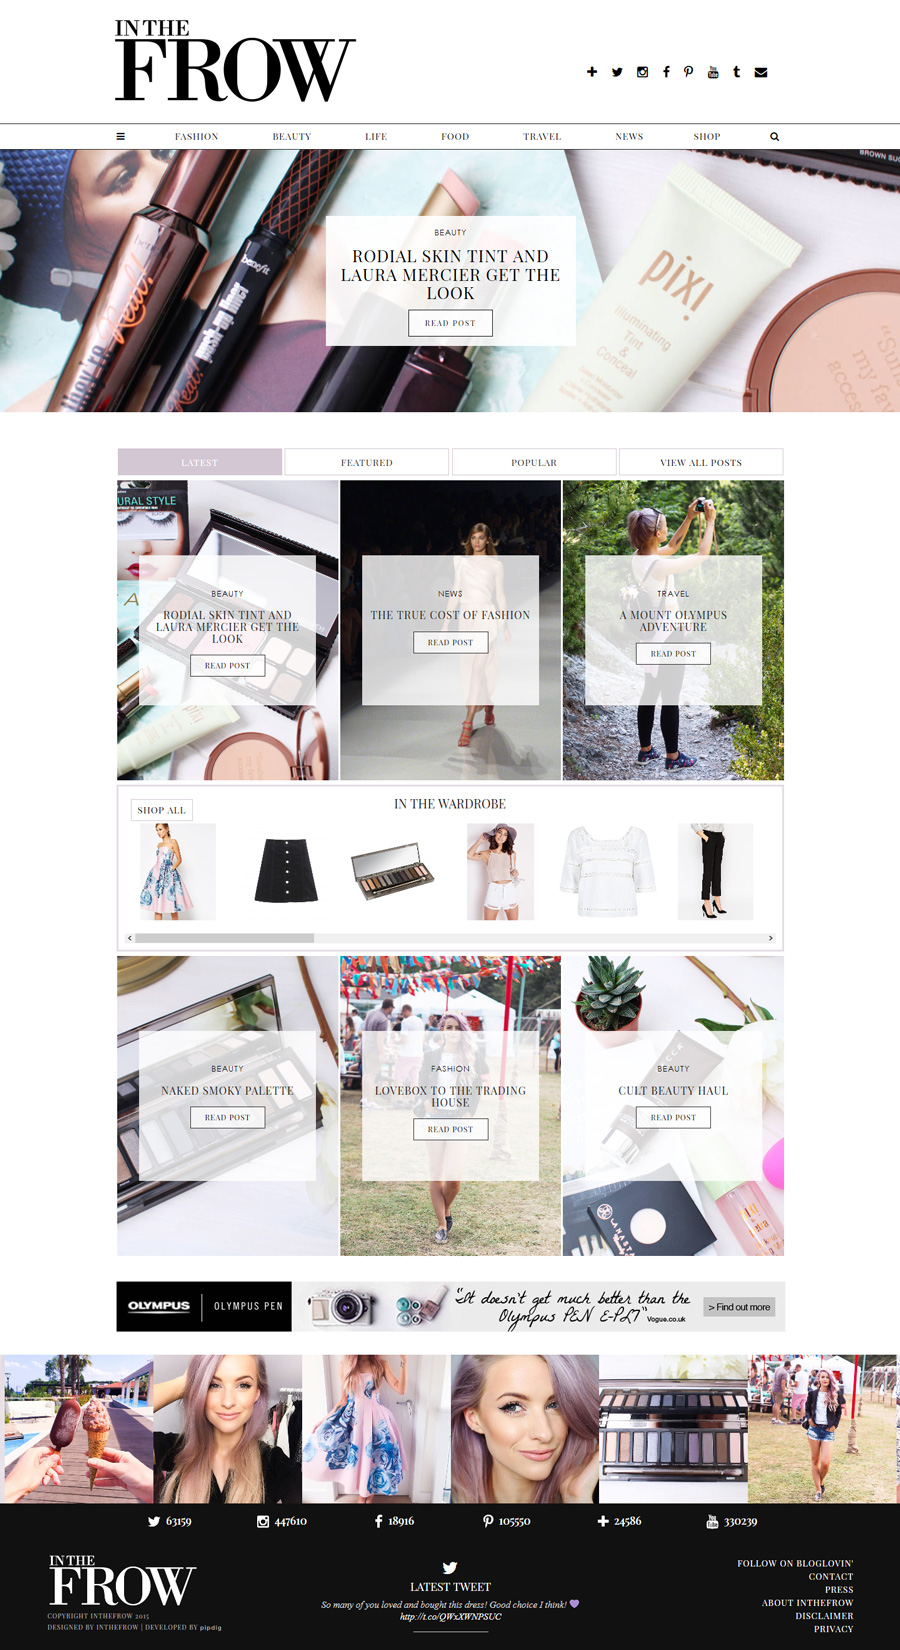 Inthefrow.com - Home Page